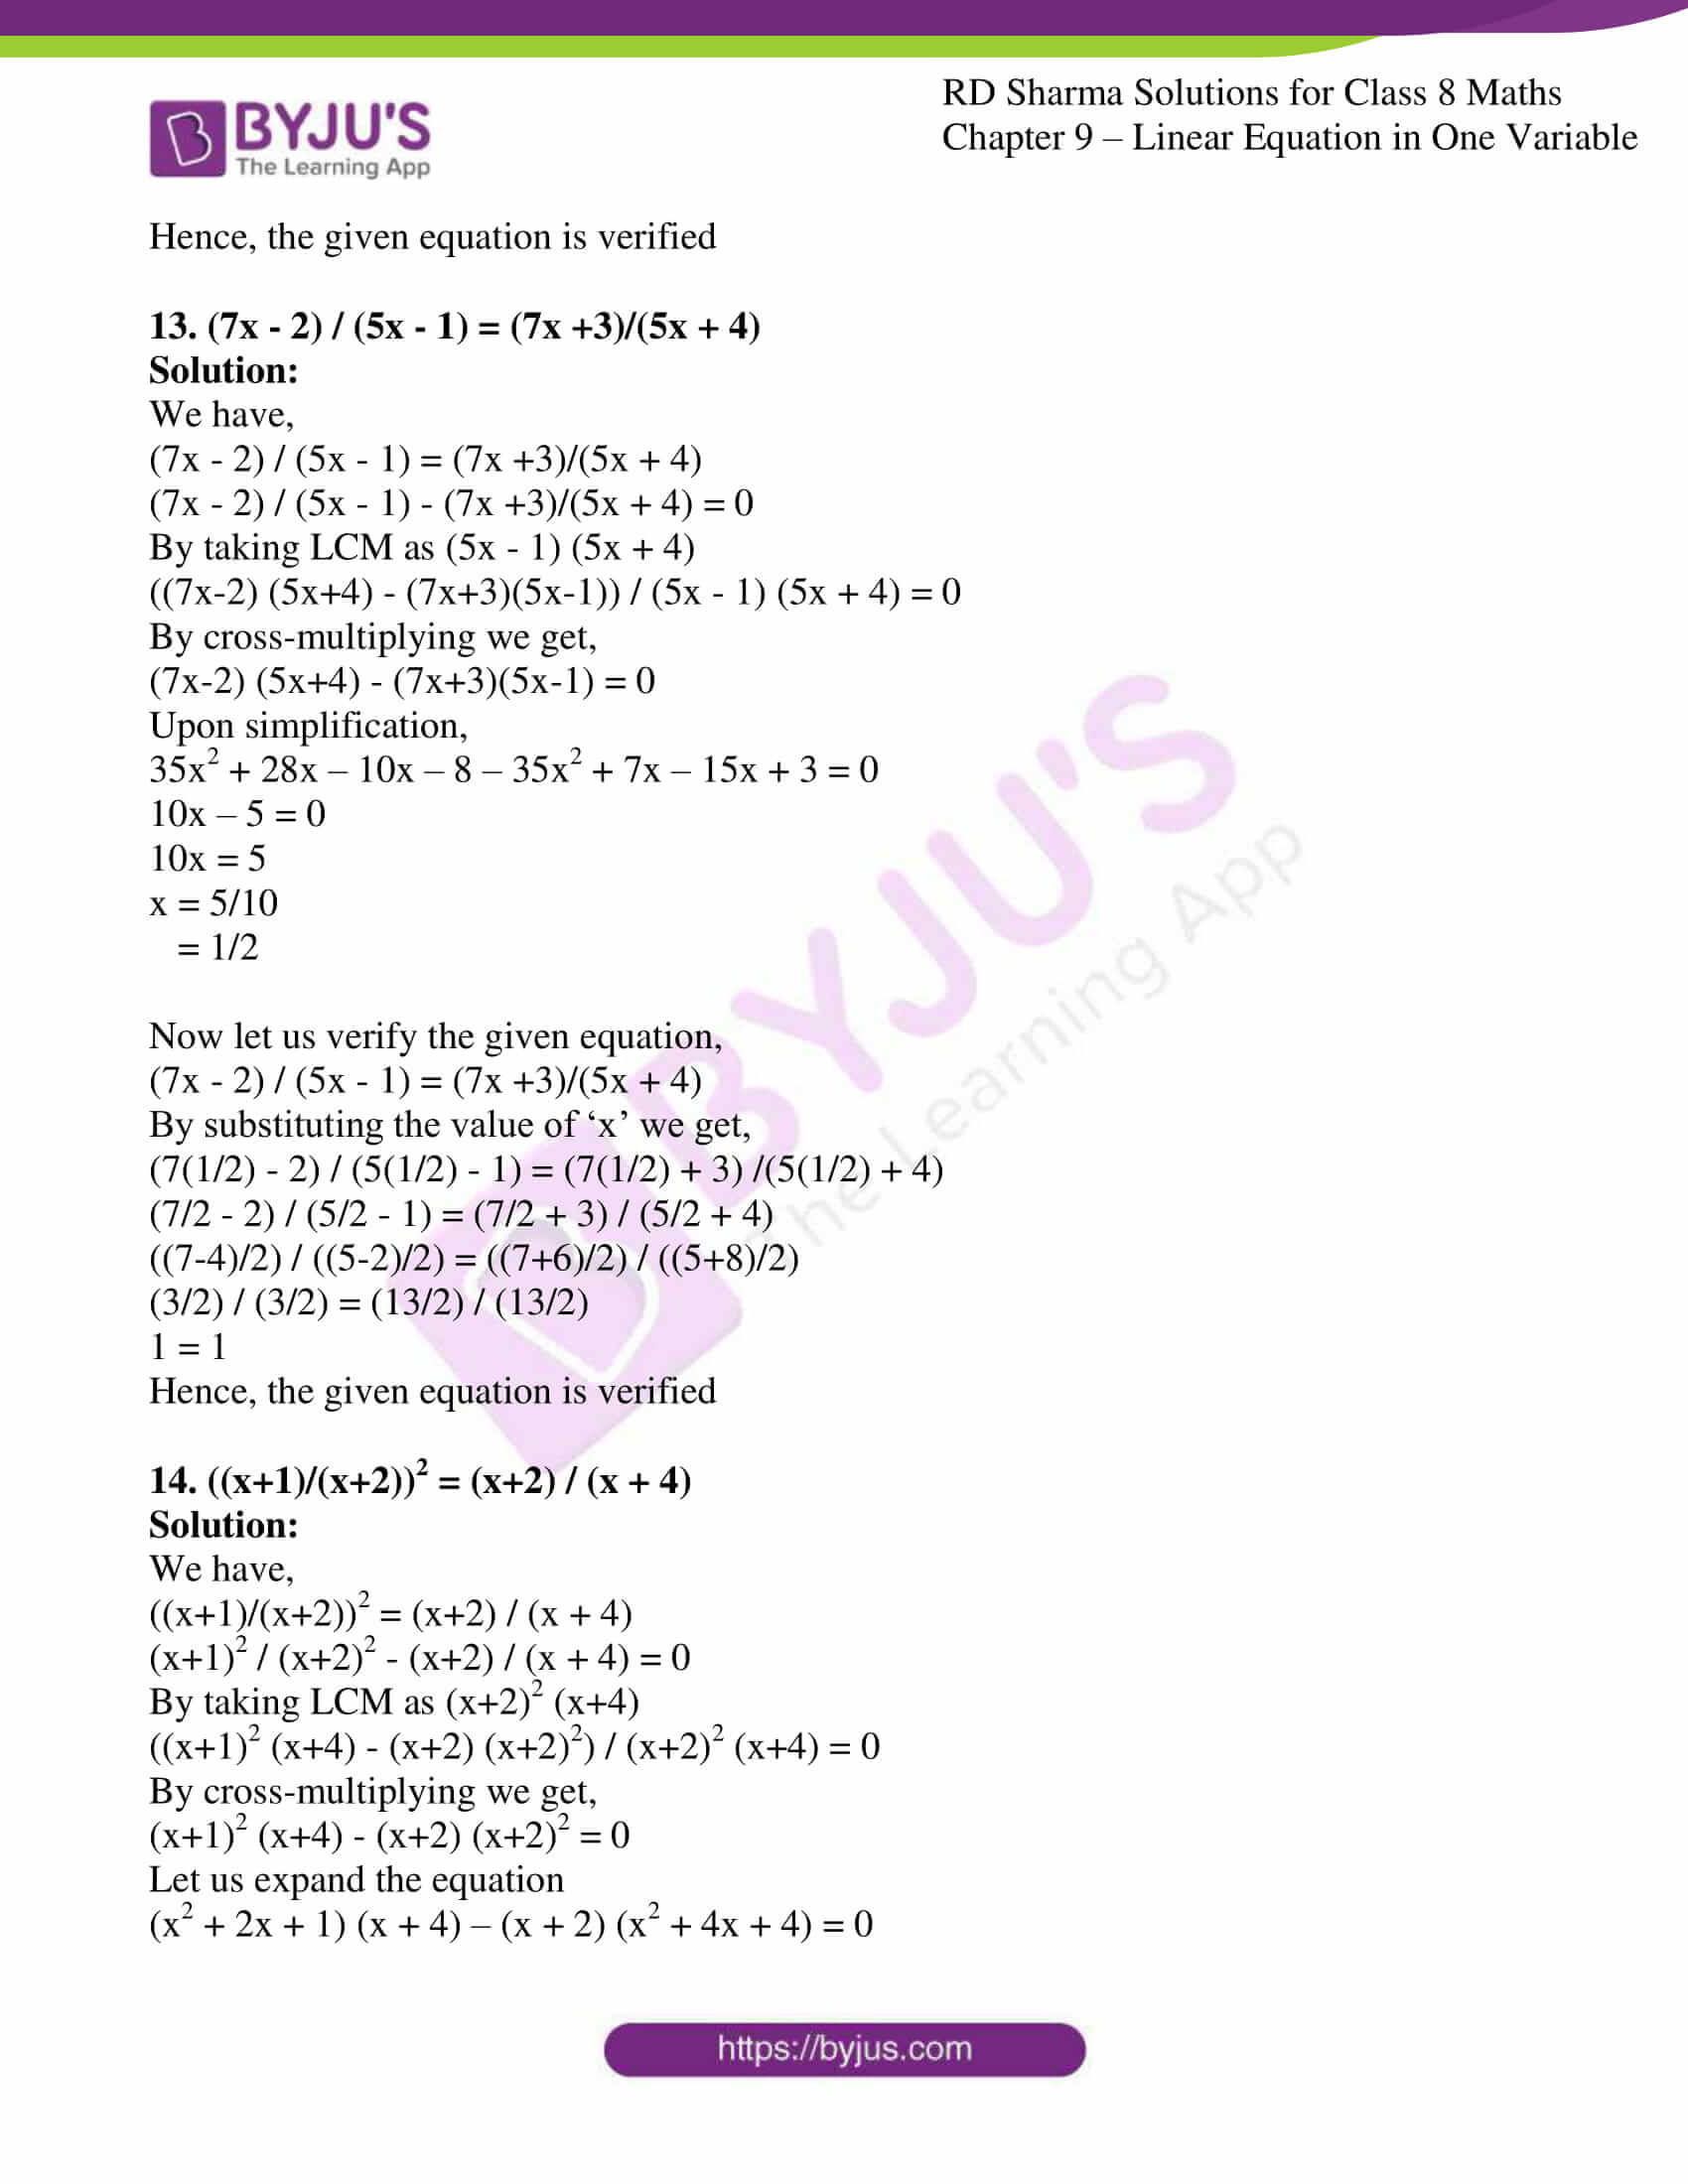 rd sharma class 8 maths chapter 9 exercise 3 08